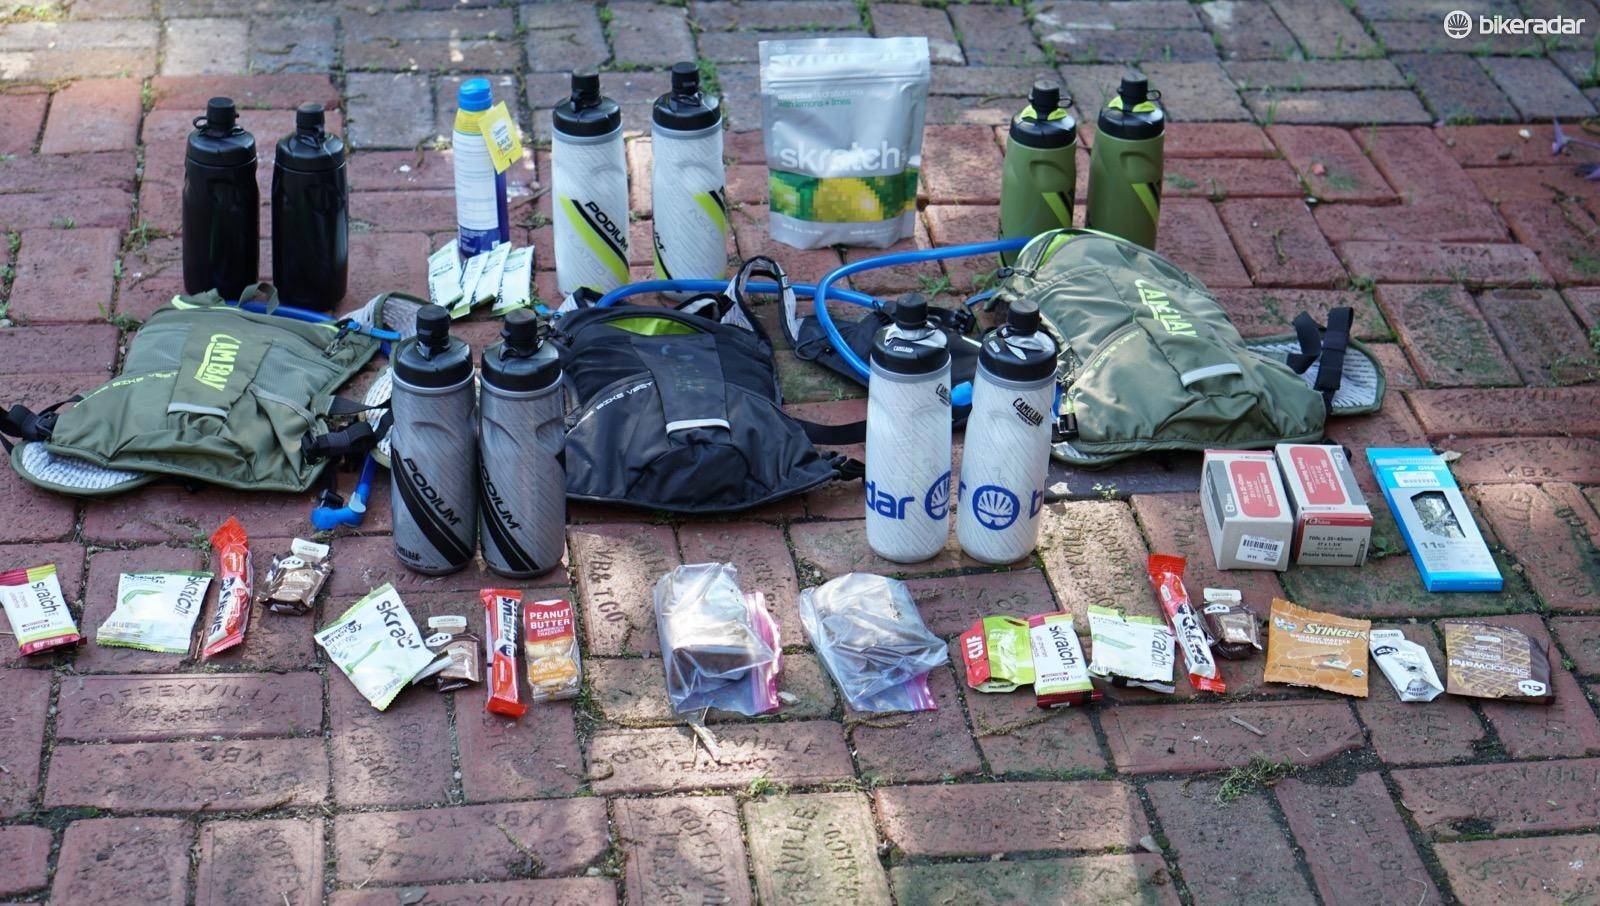 How the heck do you carry enough food and water for an all-day race? Well, you don't. Checkpoints at miles 52, 120 and 160 allowed riders to take on more supplies. I opted for bottles and CamelBak Chase vests... and still needed more